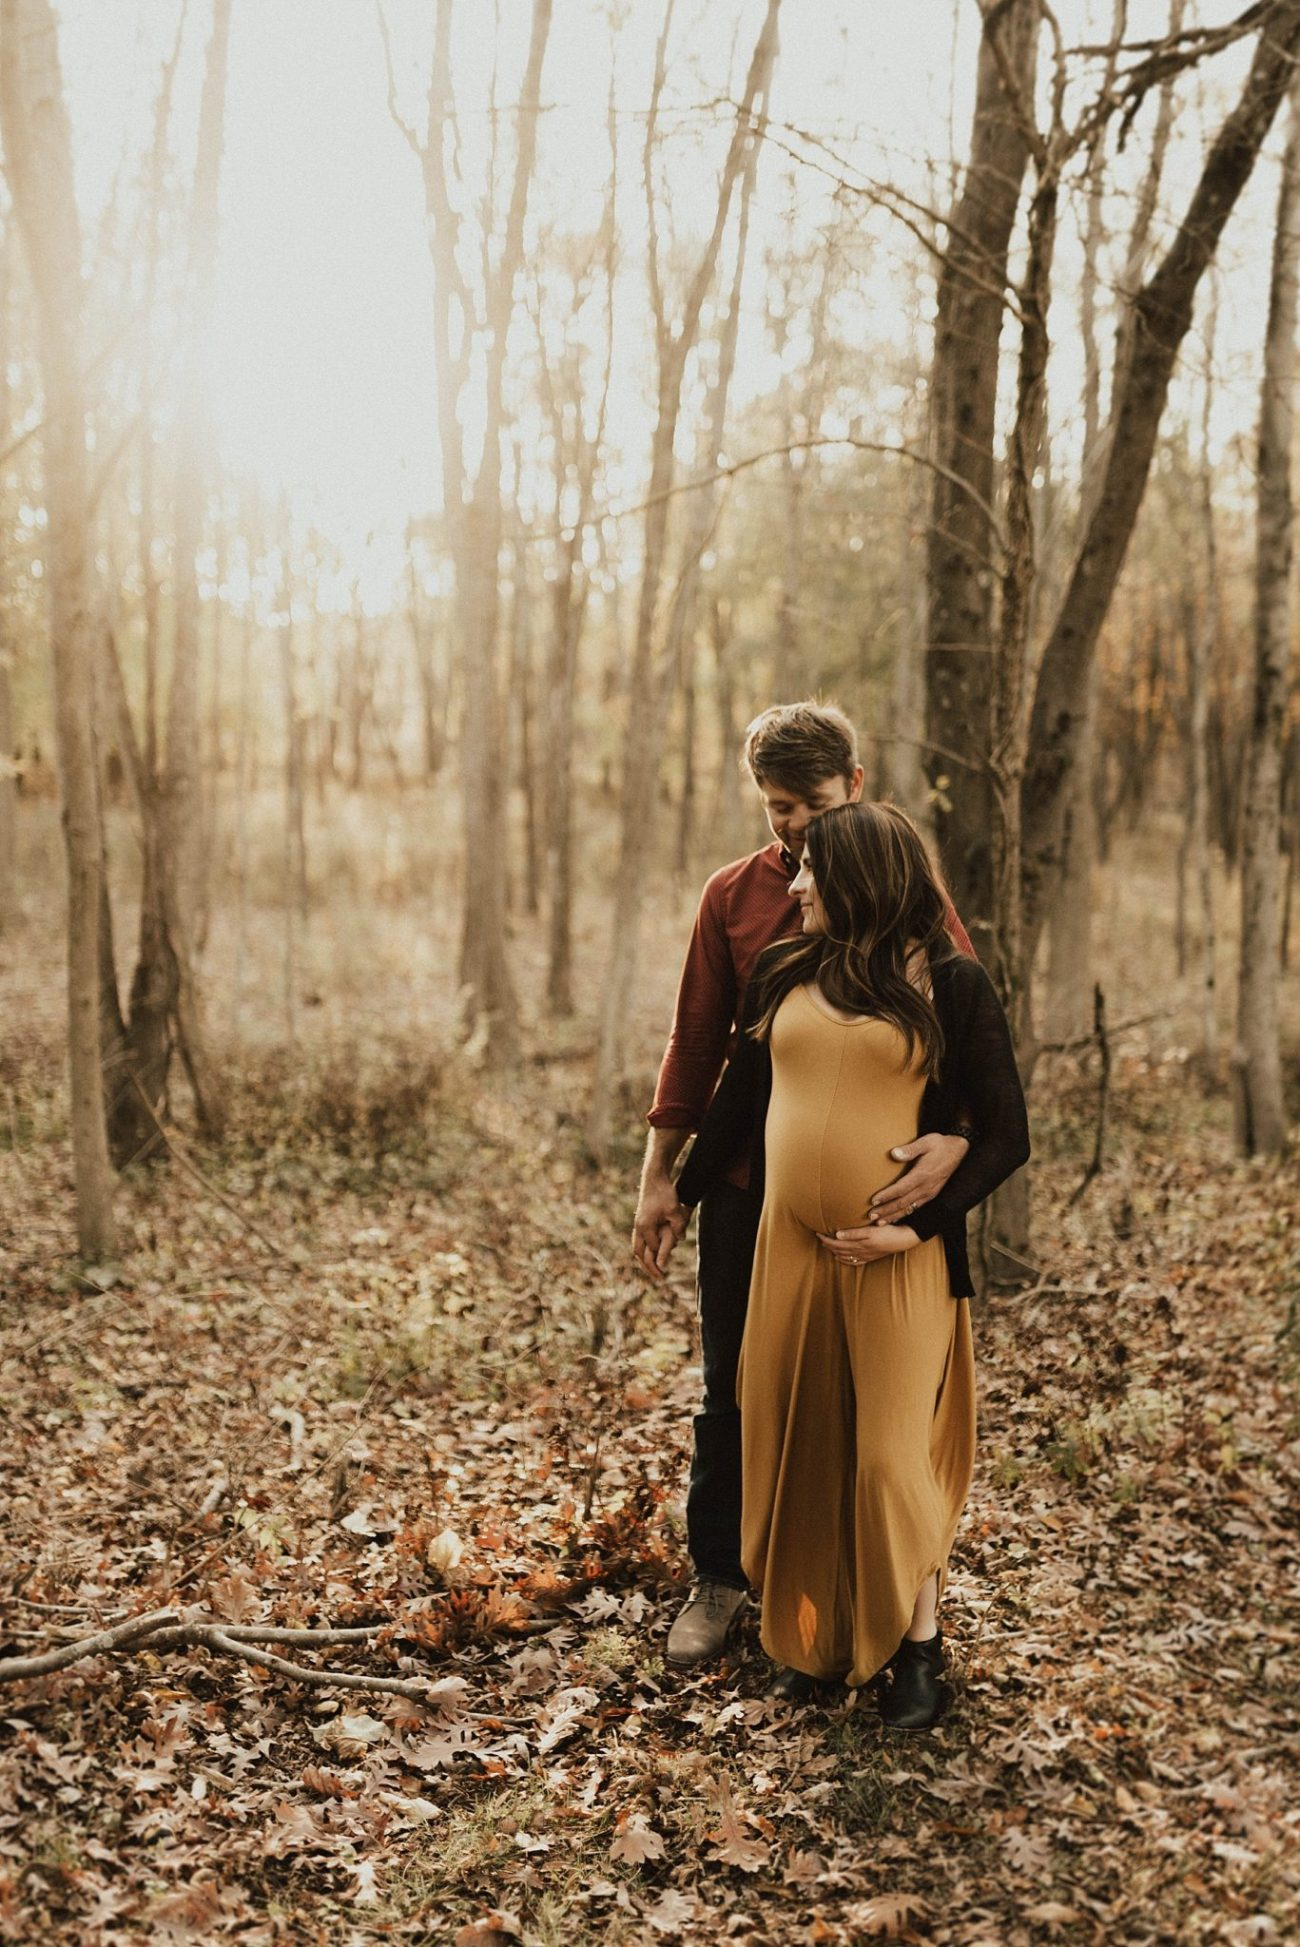 6c12b04abbb Craig + Joanna // Fall Maternity - Lauren F.otography | Central ...